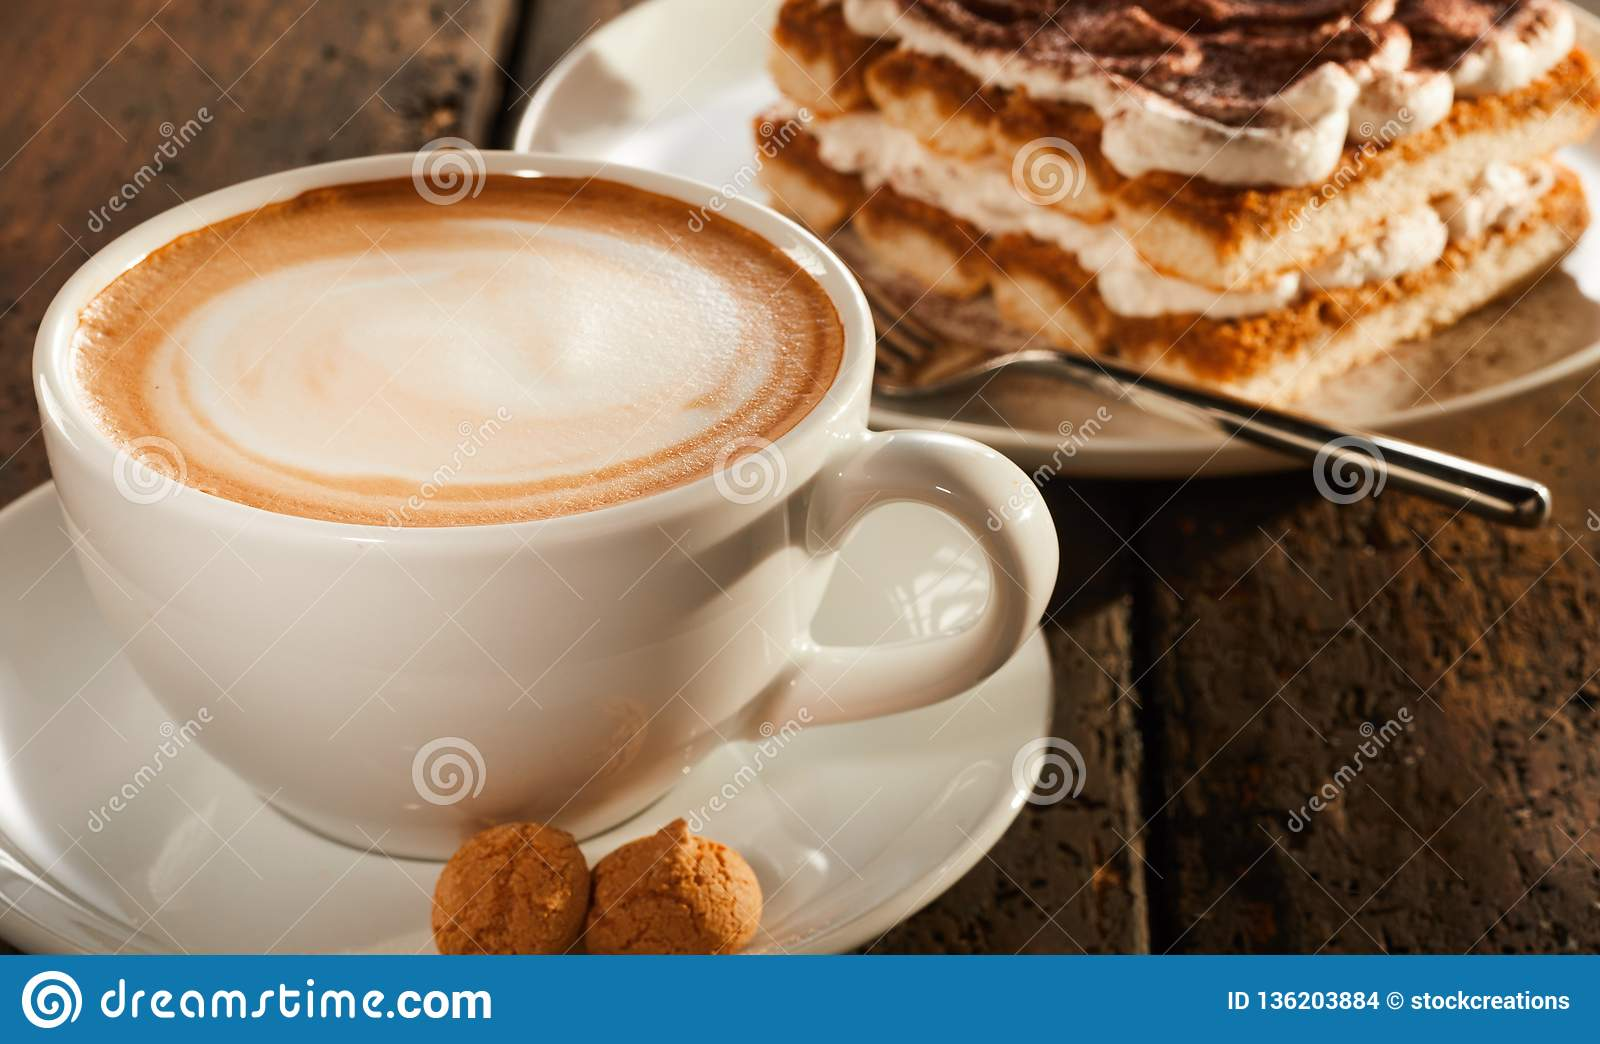 White ceramic cup of coffee with dessert